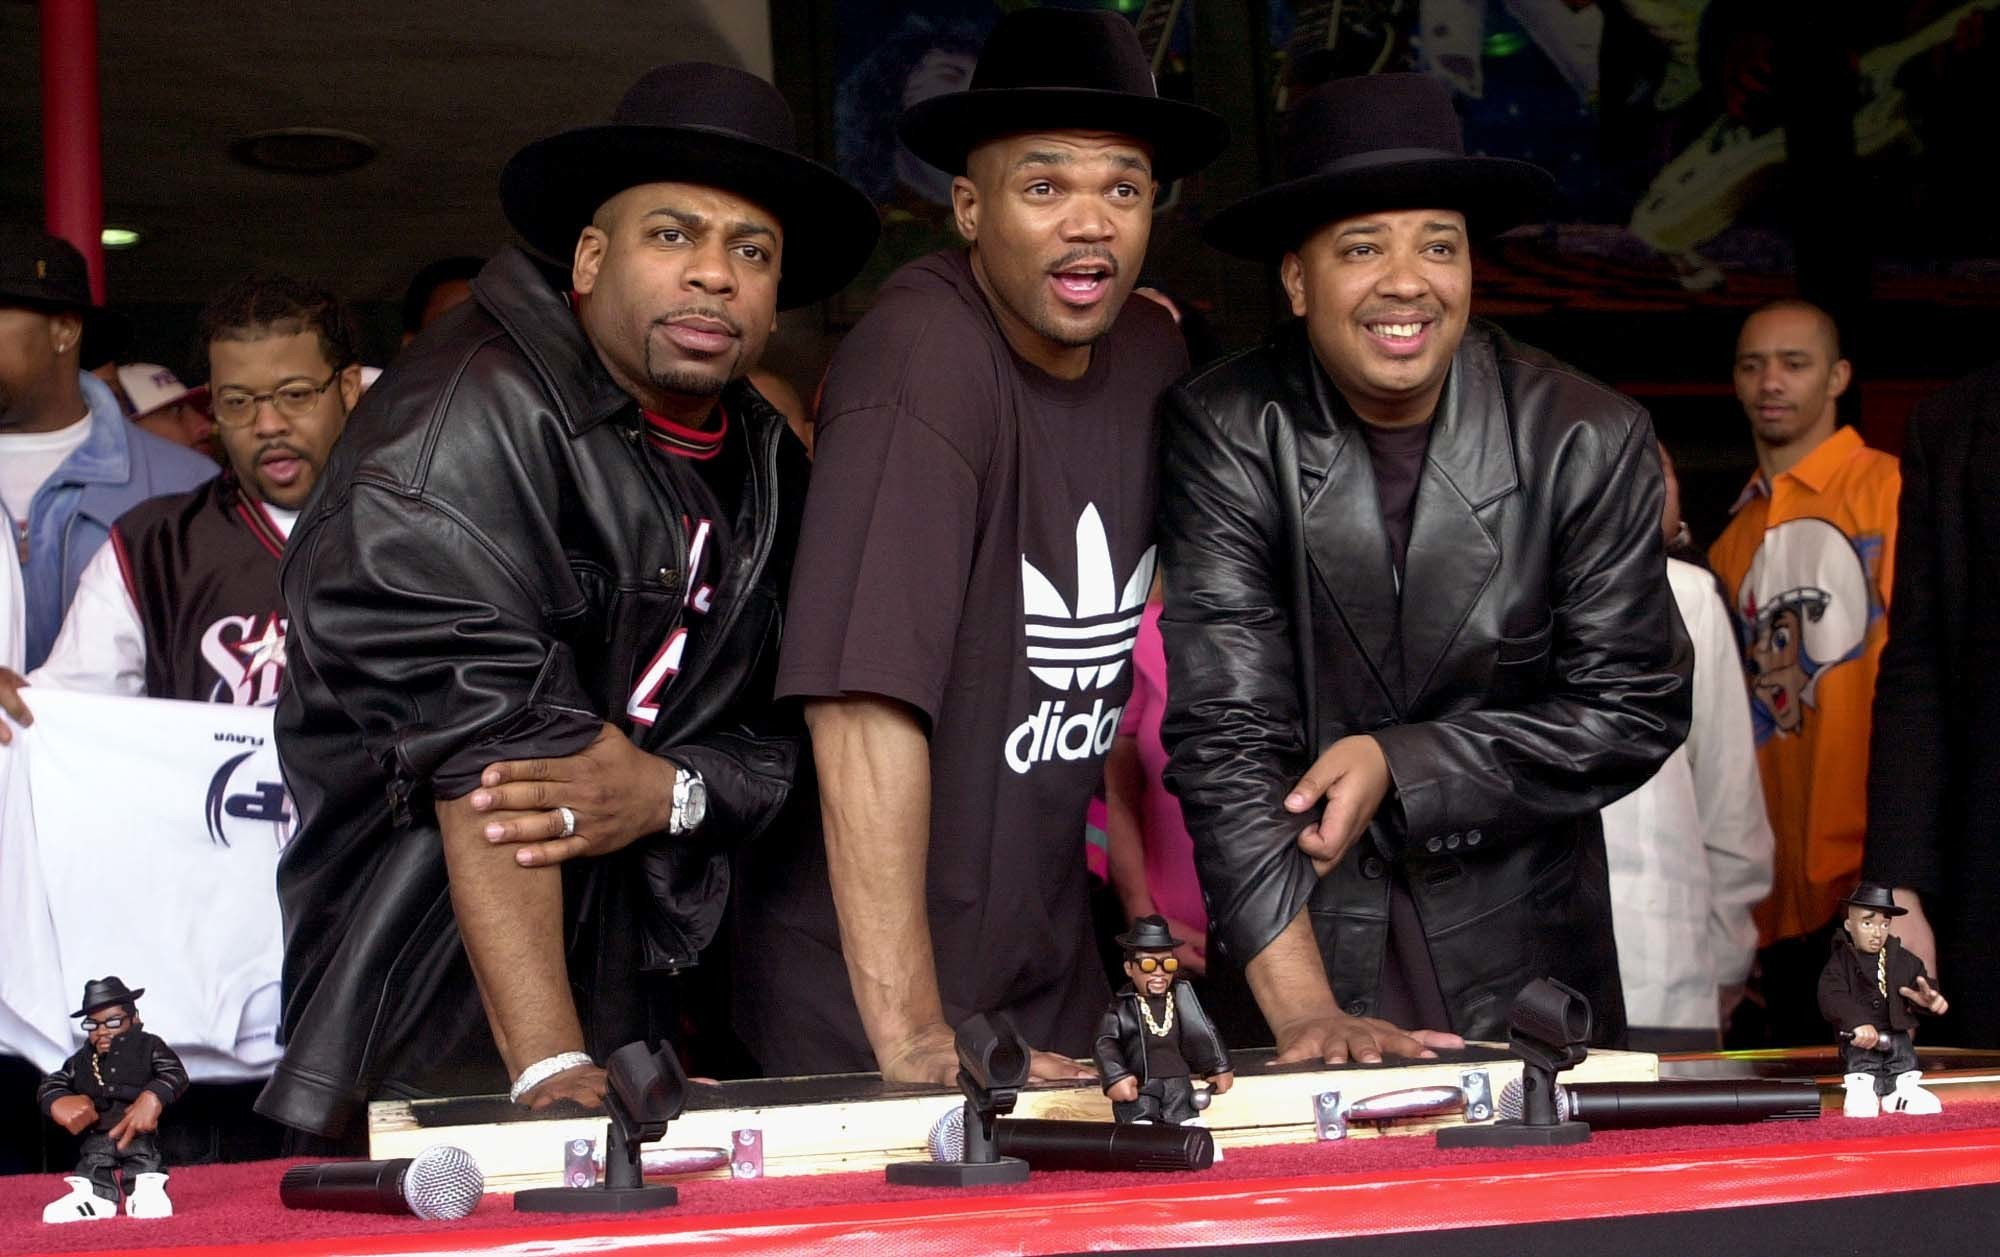 RUN-DMC NAMED BEST IN VH1'S LIST OF GREATEST HIP-HOP ACTS